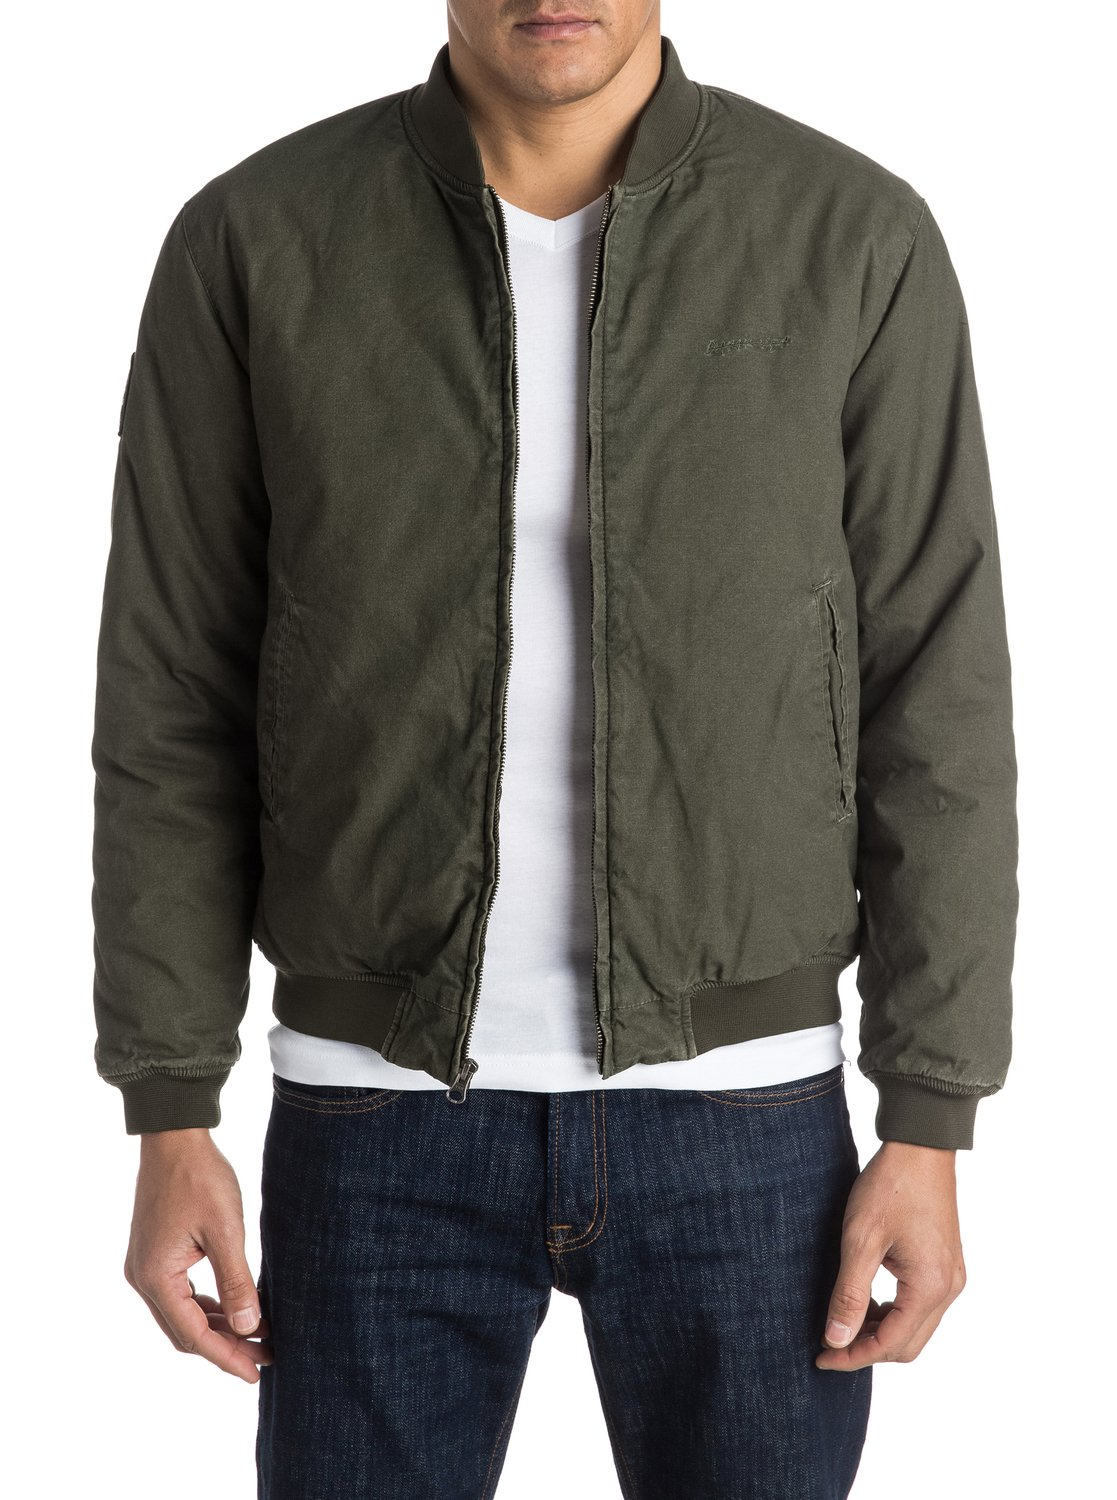 Eqyjk03244 Deny Blouson Bomber All Quiksilver wTwFnzPtq